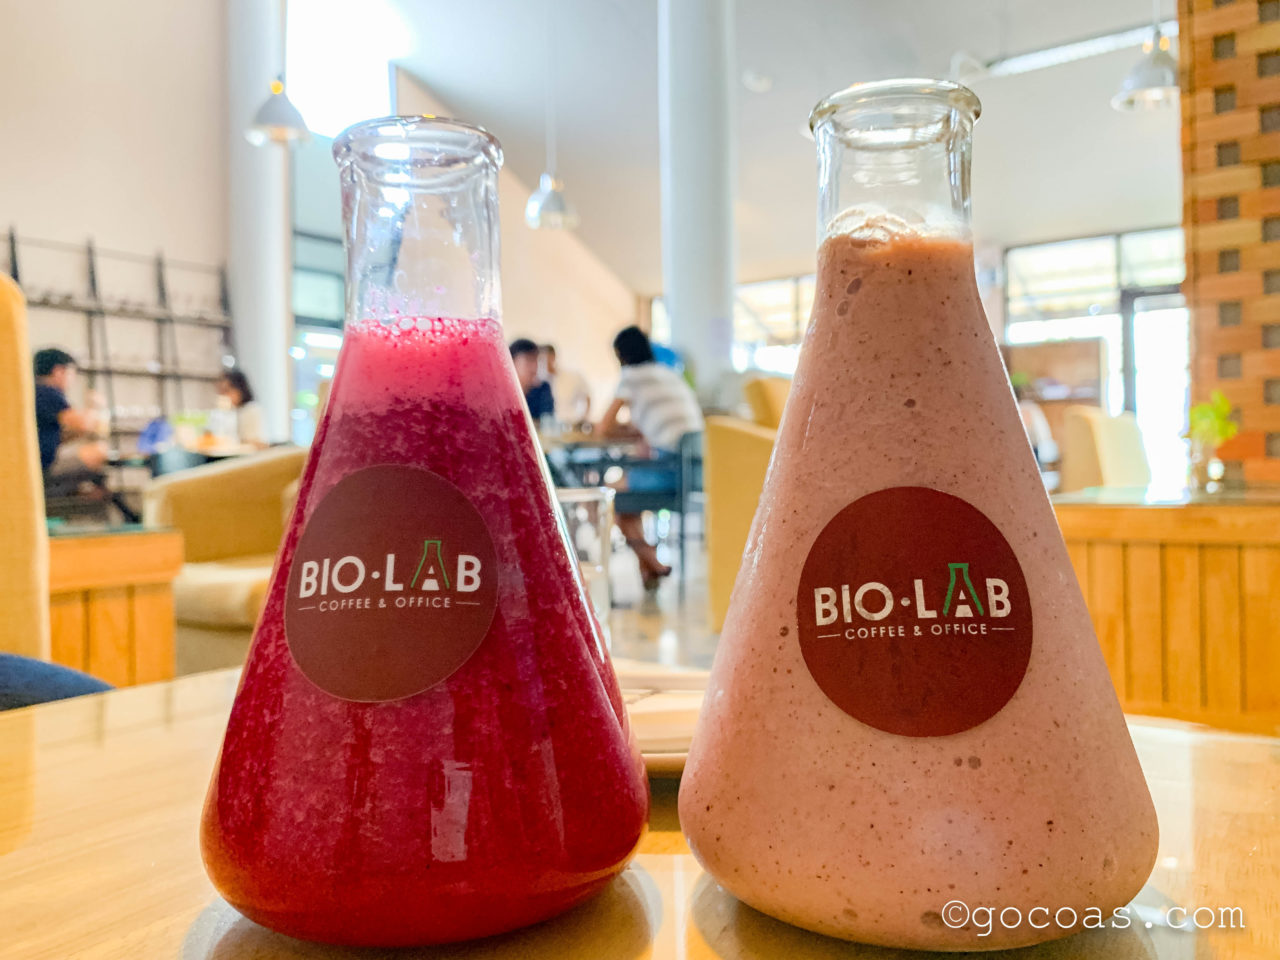 BIOLAB Coffee & Officeドリンク